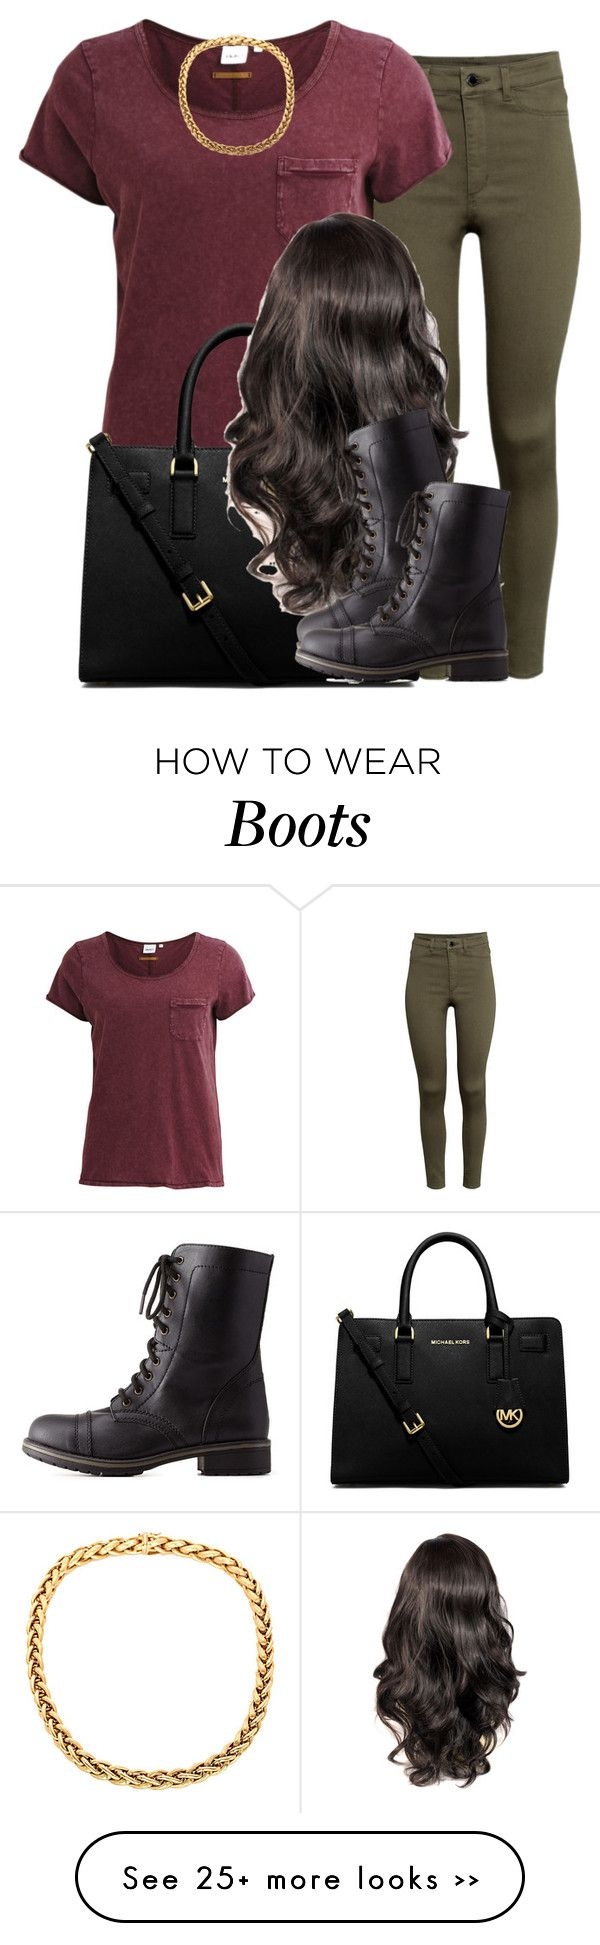 """."" by trillest-queen on Polyvore featuring H&M, Object Collectors Item, MICHAEL Michael Kors and Charlotte Russe"